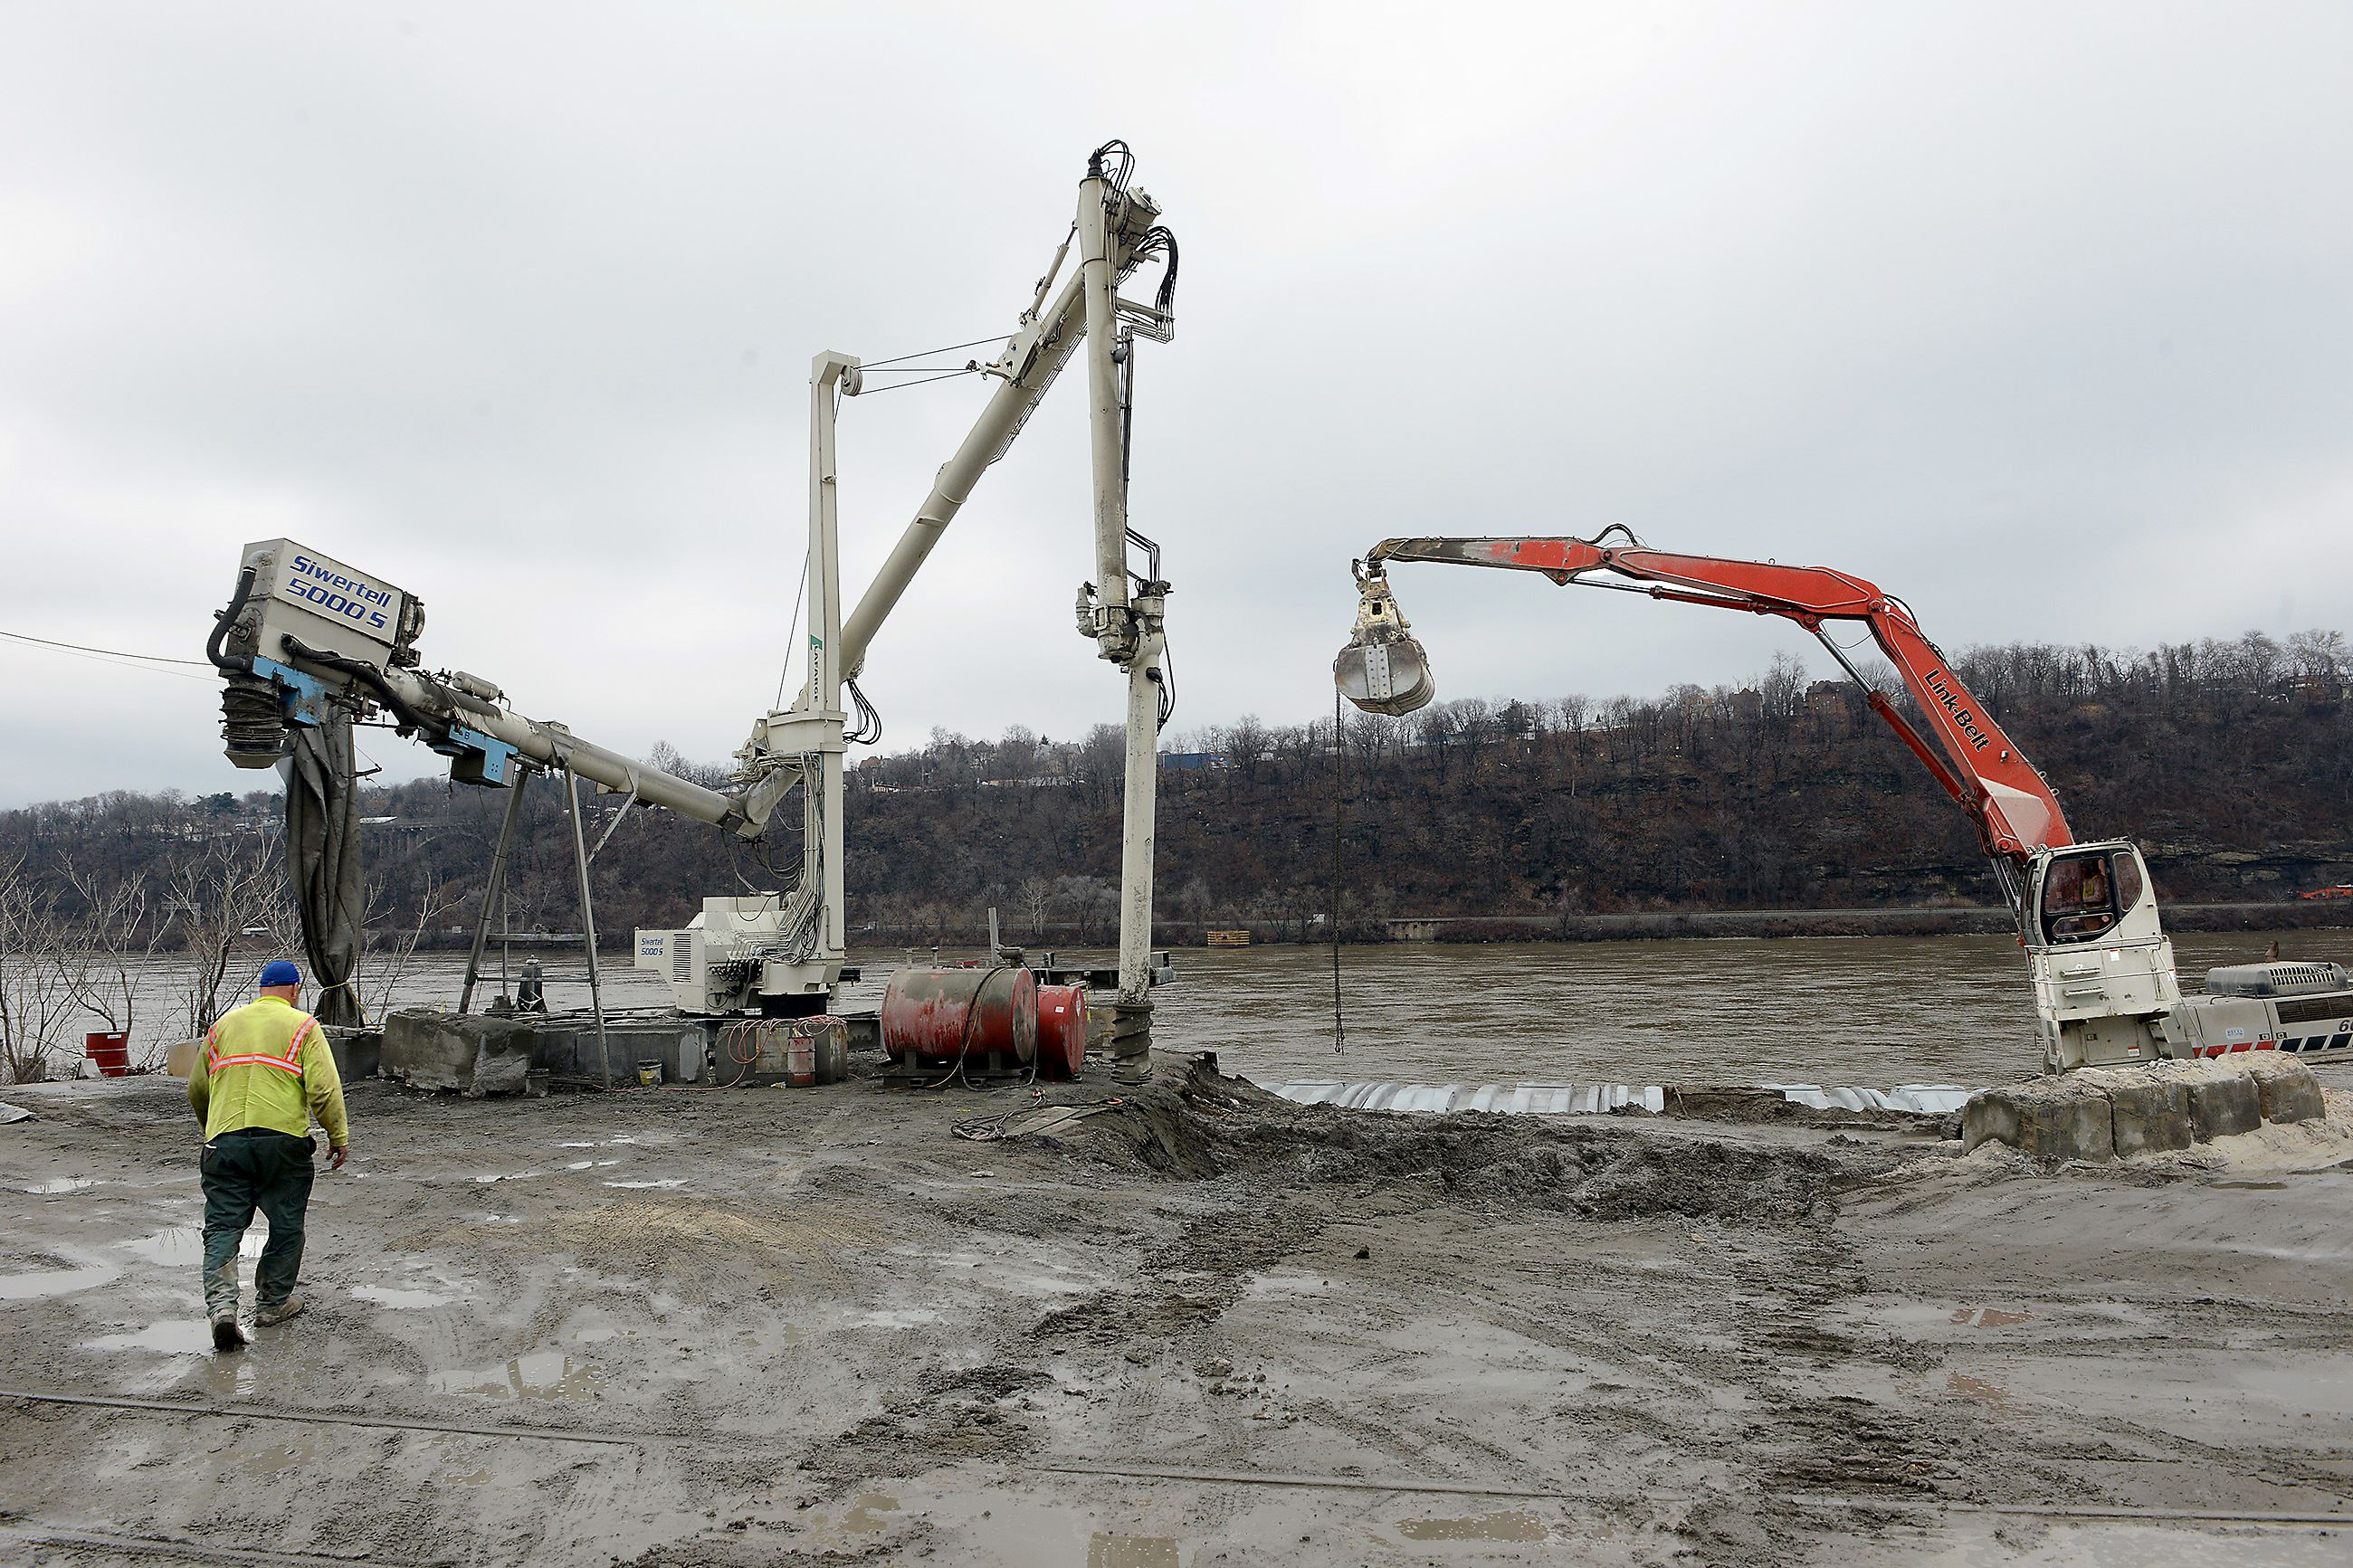 20150320MWHmrieBiz05-4 Equipment used to unload barges rests at the edge of the Ohio River at McKees Rocks Industrial Enterprises. An auger, left, and a Link-Belt excavator, right are used to process and move sand from incoming barges.